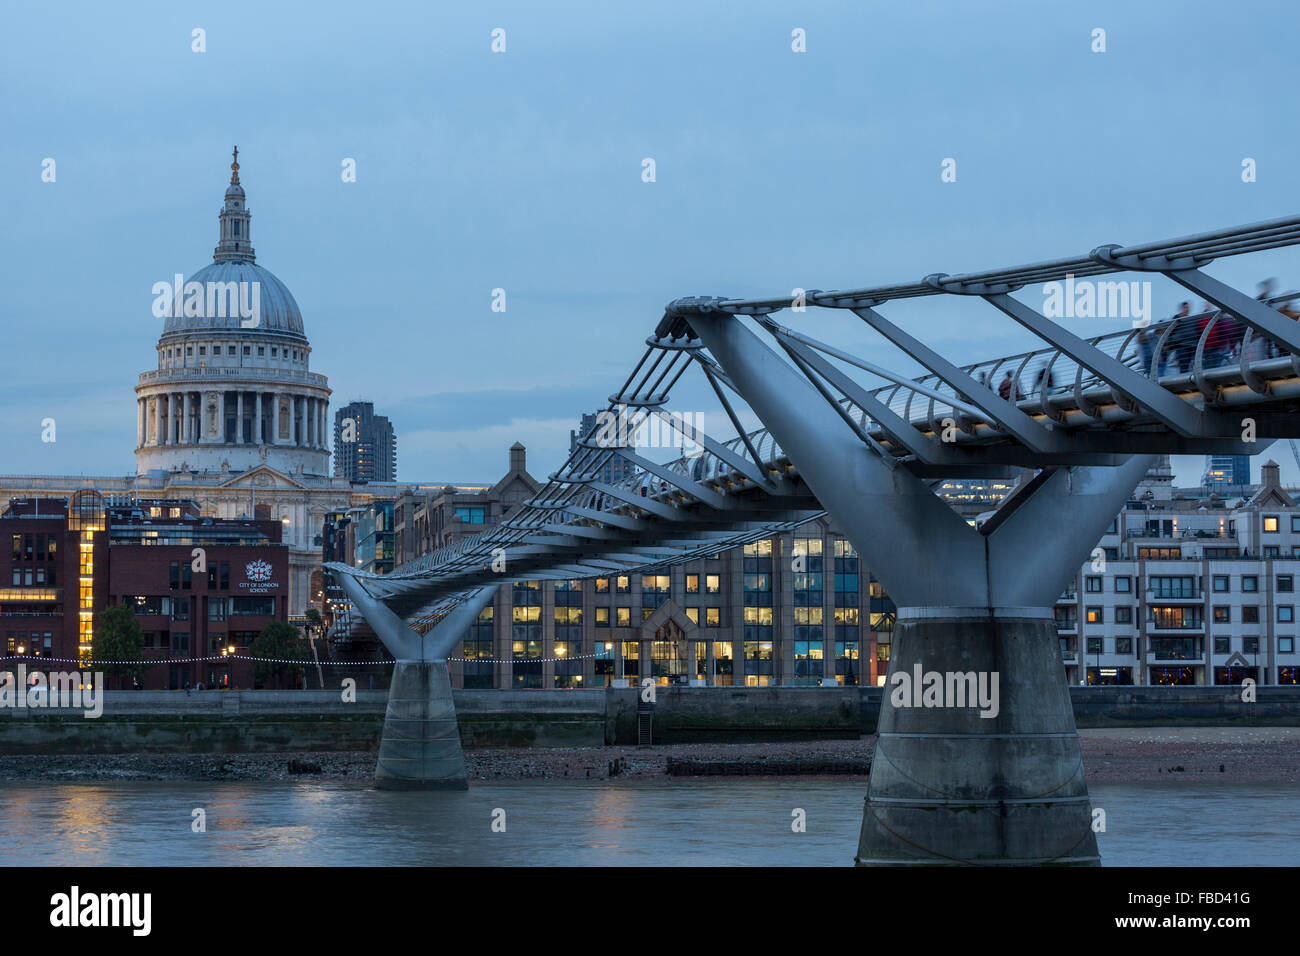 St Paul's Cathedral and Millennium Bridge, London, United Kingdom - Stock Image